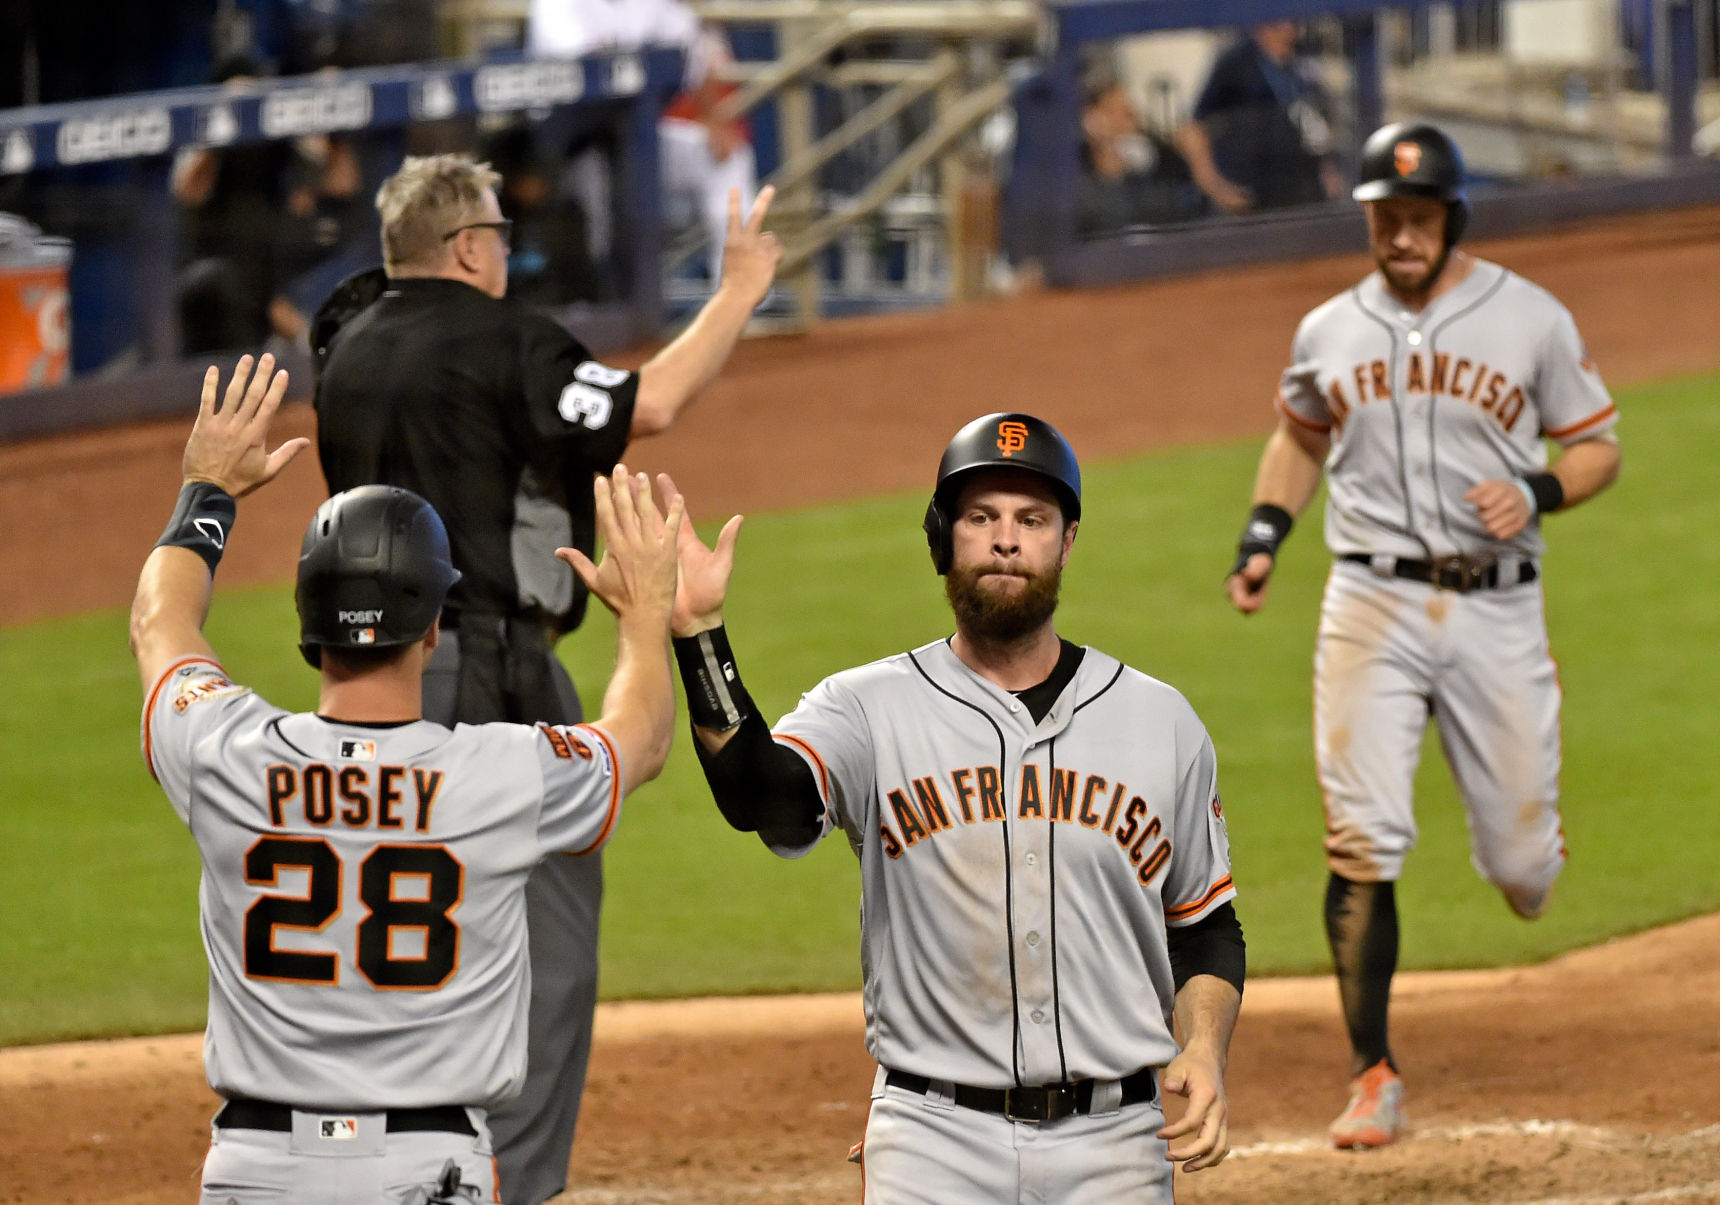 MLB: San Francisco Giants at Miami Marlins